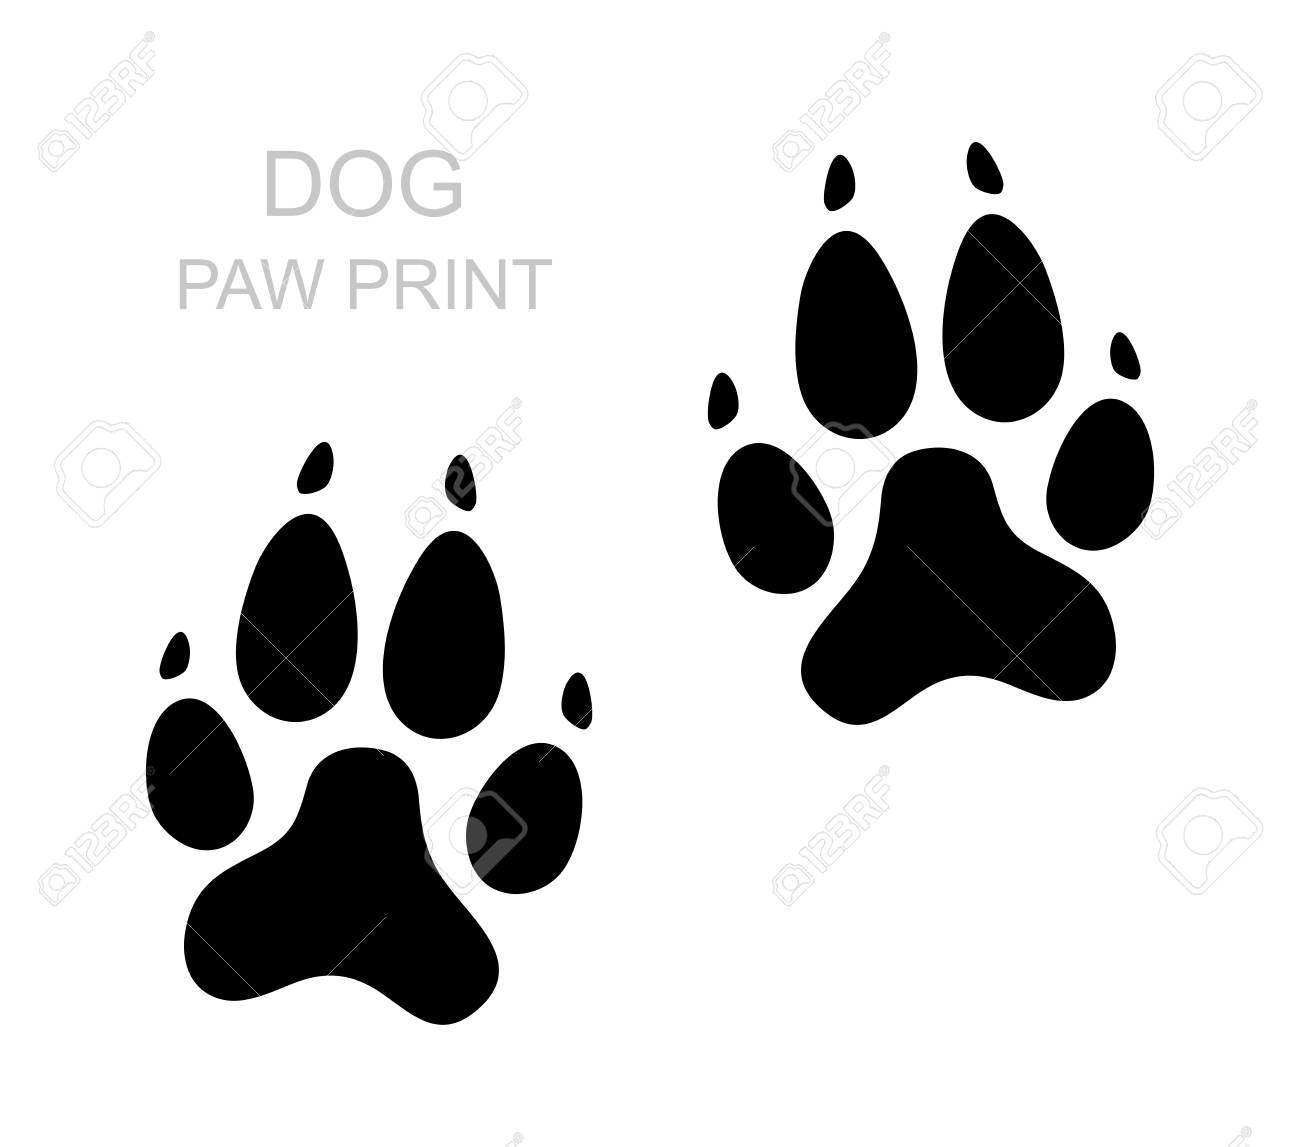 Dog Paw Black Silhouette Foot Print Animal Paw Isolated On